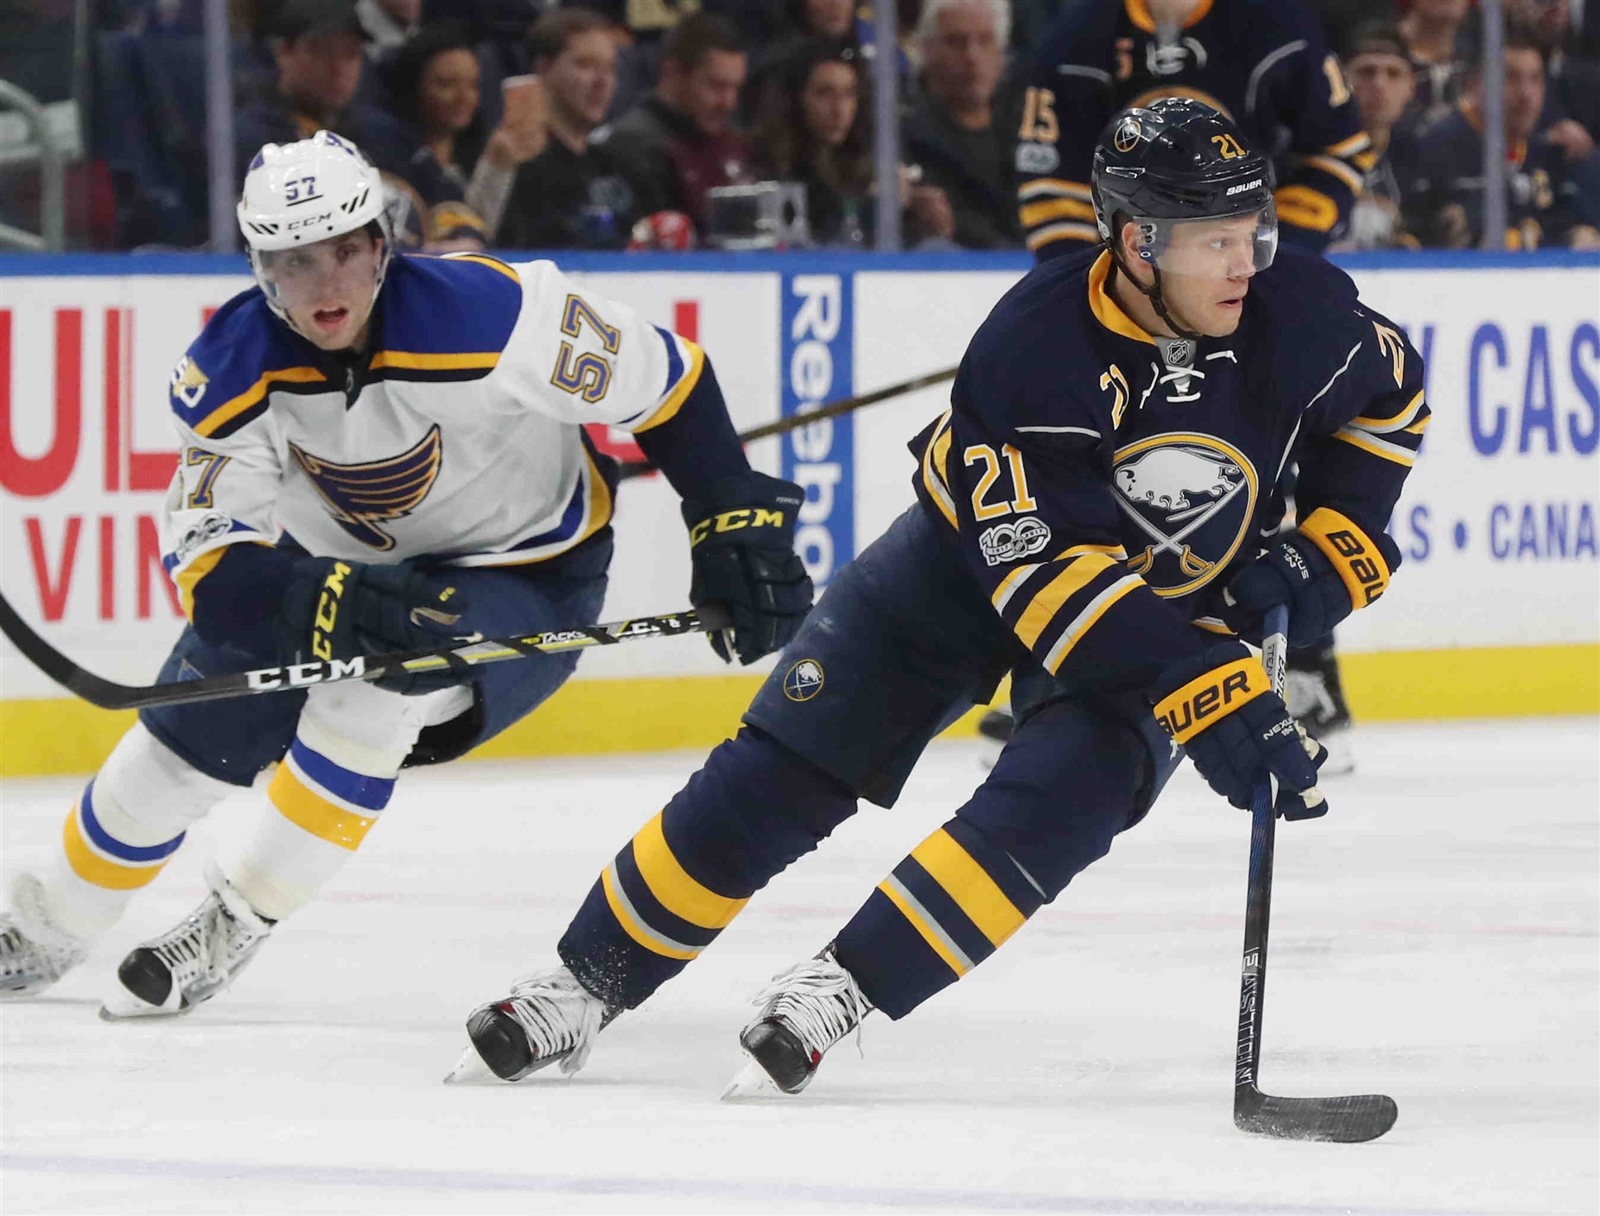 Kyle Okposo has begun his recovery from a lingering ailment that had him hospitalized. (James P. McCoy/Buffalo News)